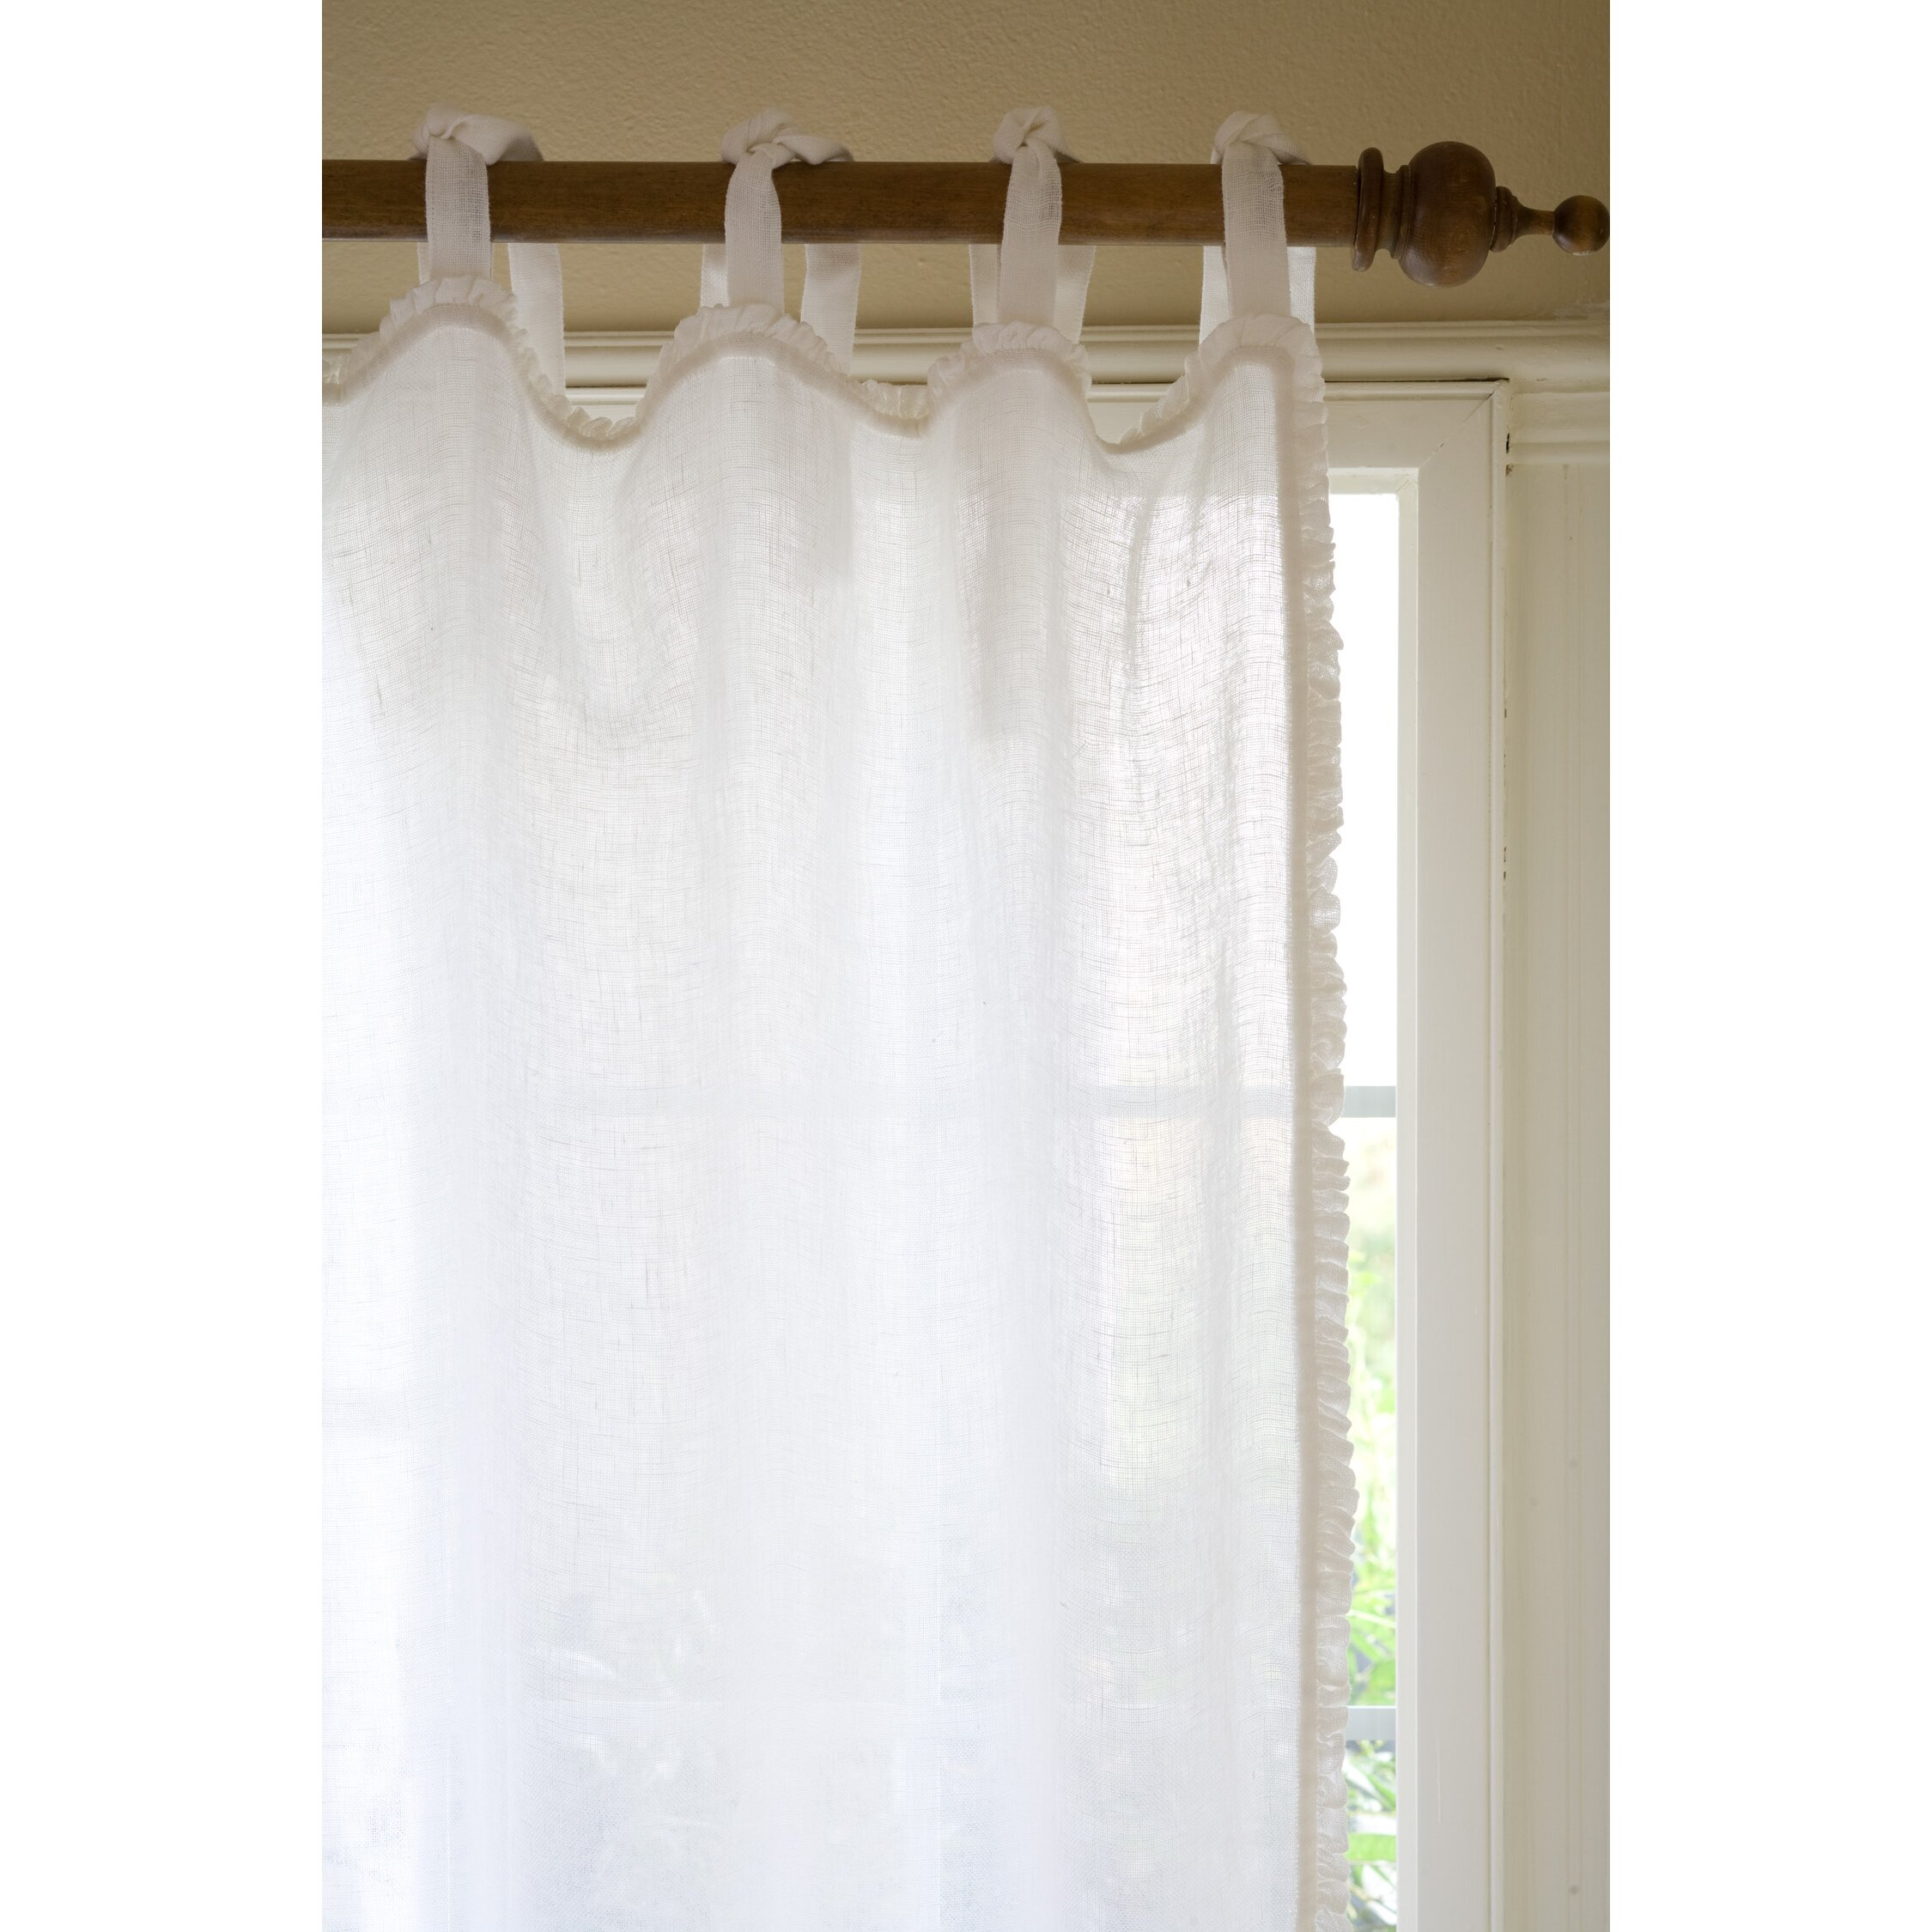 Taylor Linens Ruffle Linen Tab Top Single Curtain Panel